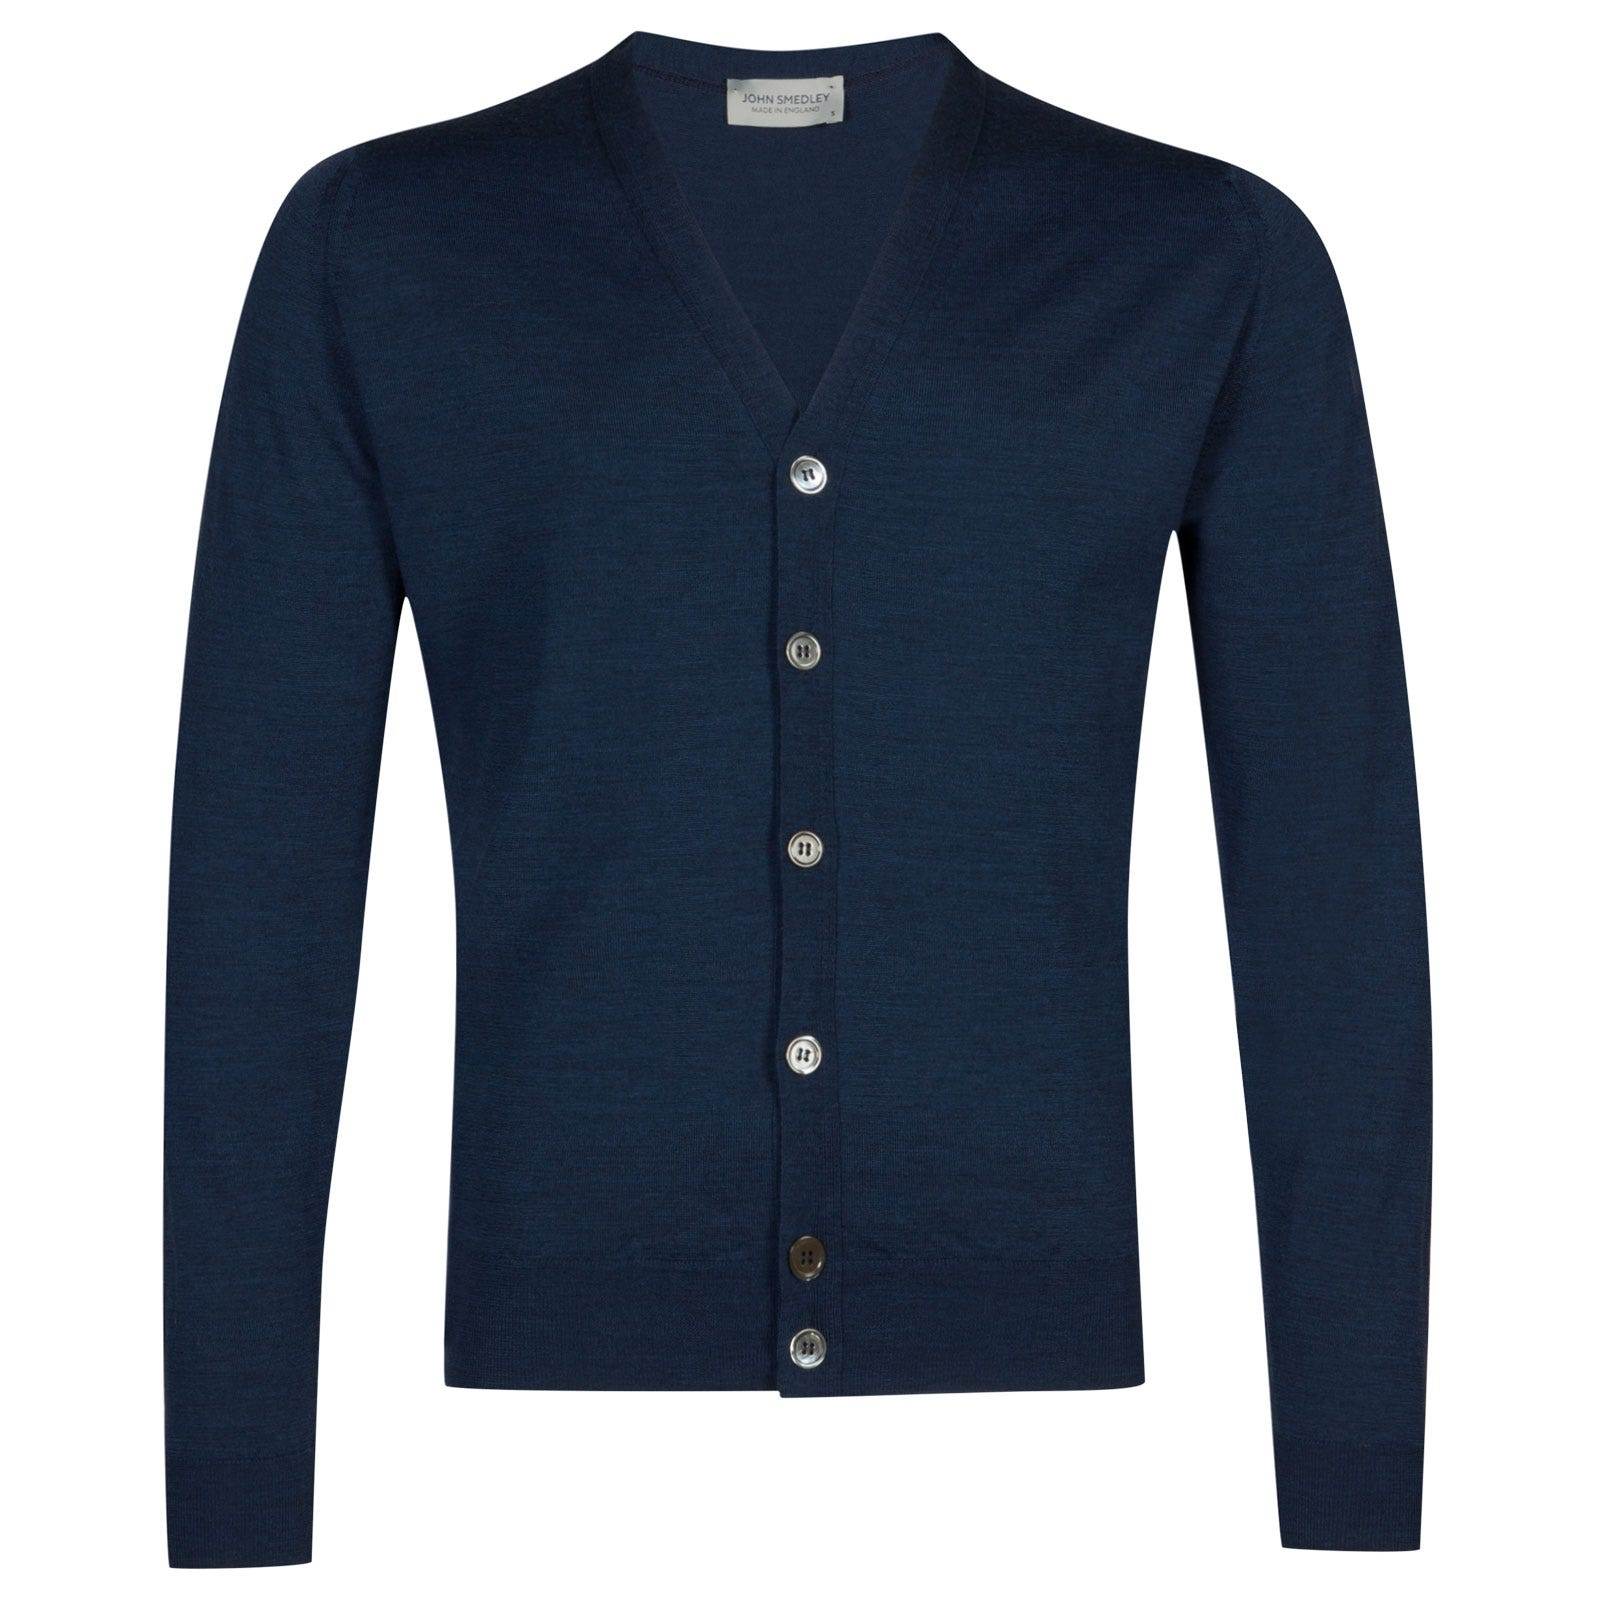 John Smedley naples Merino Wool Cardigan in Midnight-M